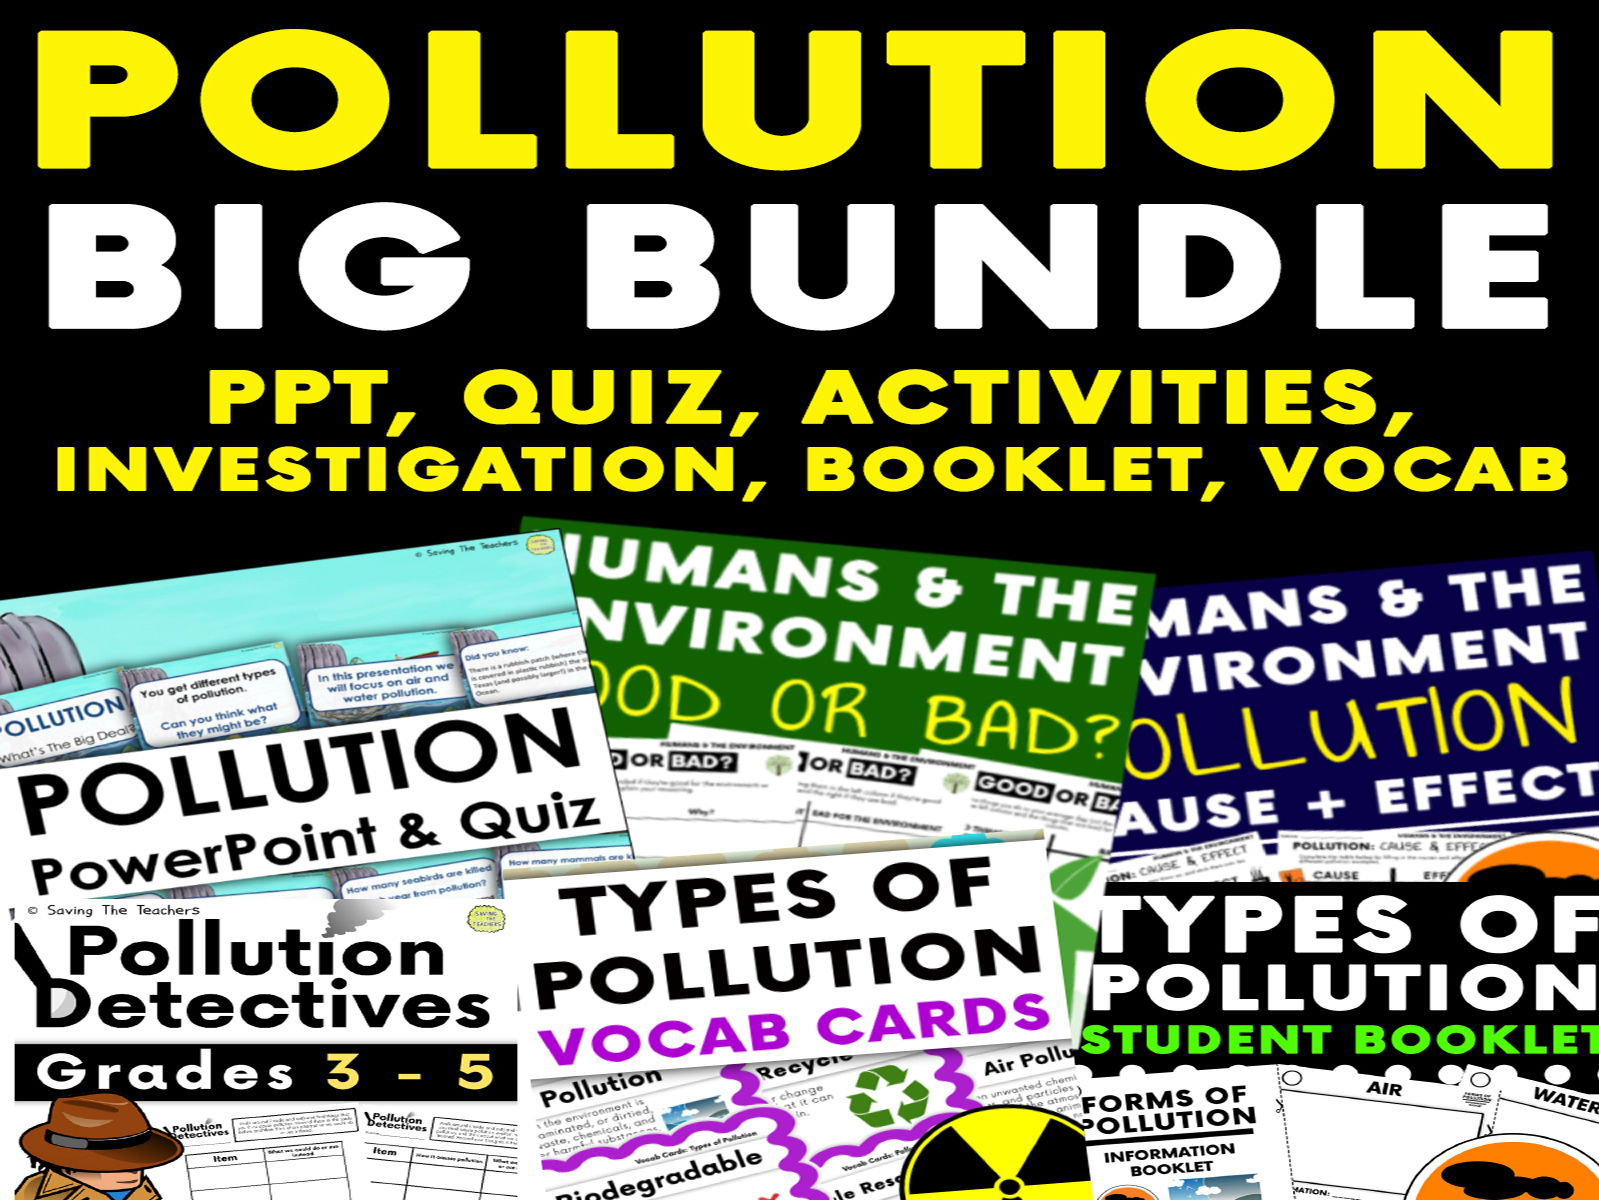 Humans and The Environment: Pollution - HUGE BUNDLE